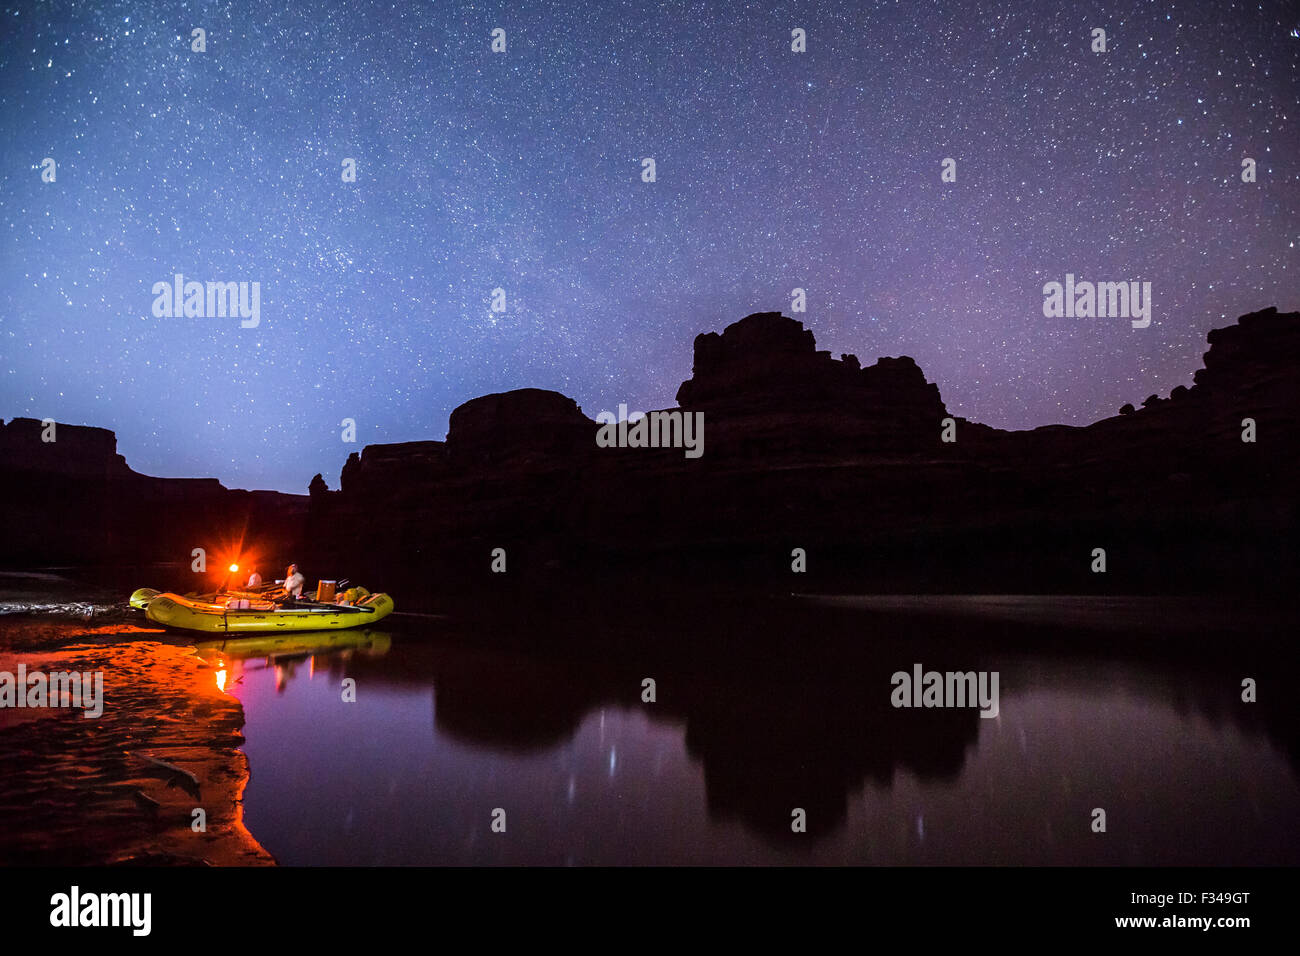 Glowing rafts on waters edge under a night sky. Stock Photo